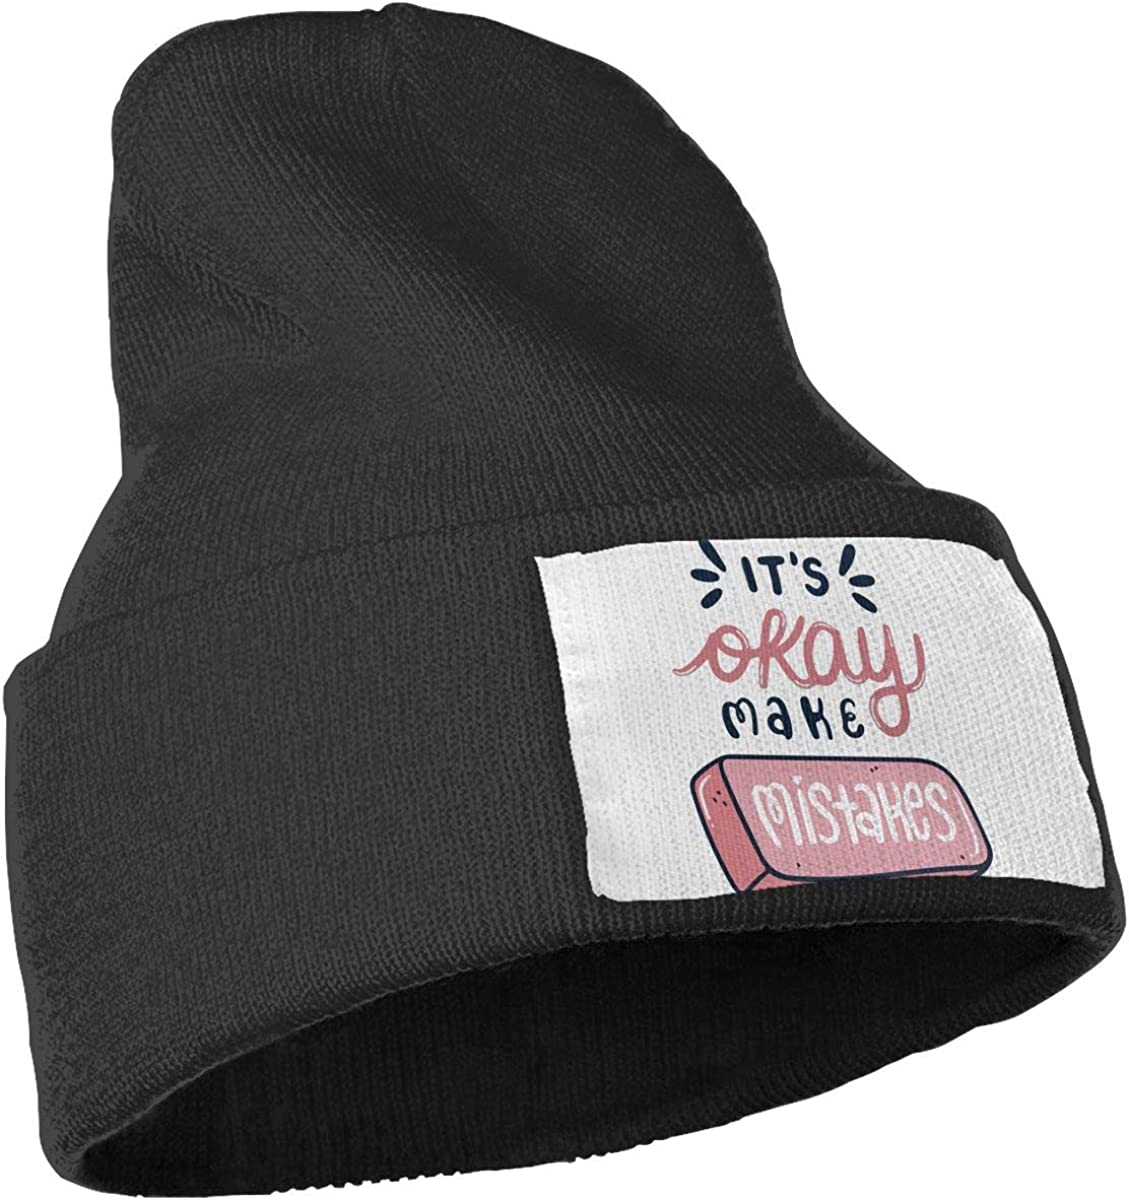 QZqDQ Its Oray Make Mistakes Unisex Fashion Knitted Hat Luxury Hip-Hop Cap